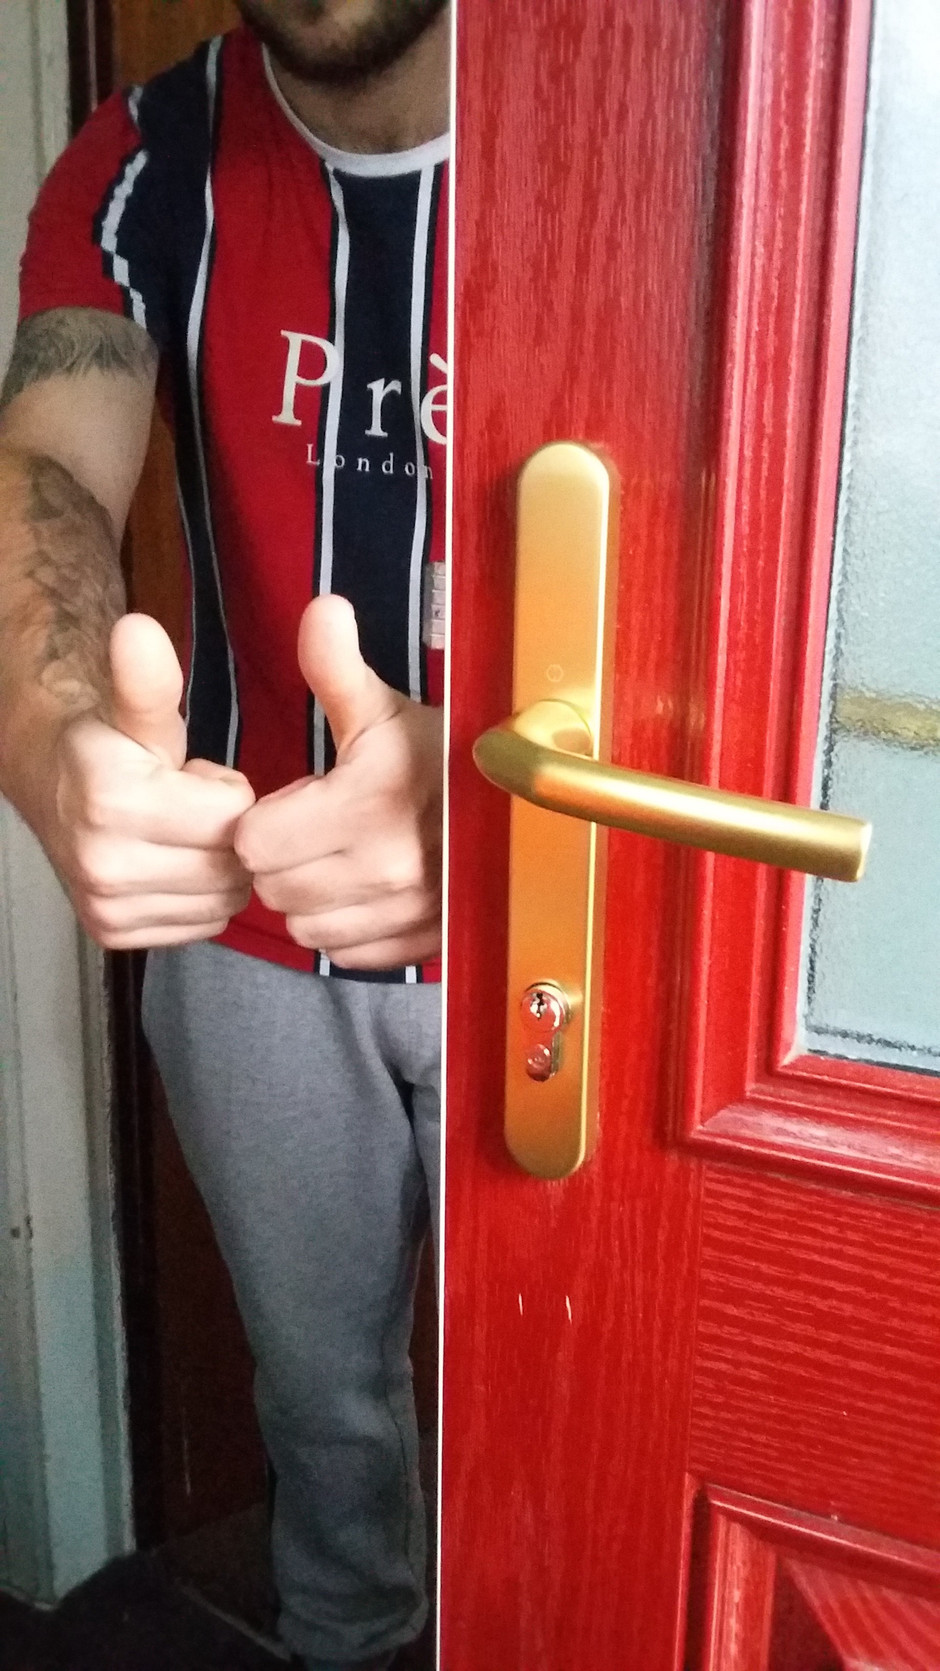 24Hr Locksmith Washington & Sunderland